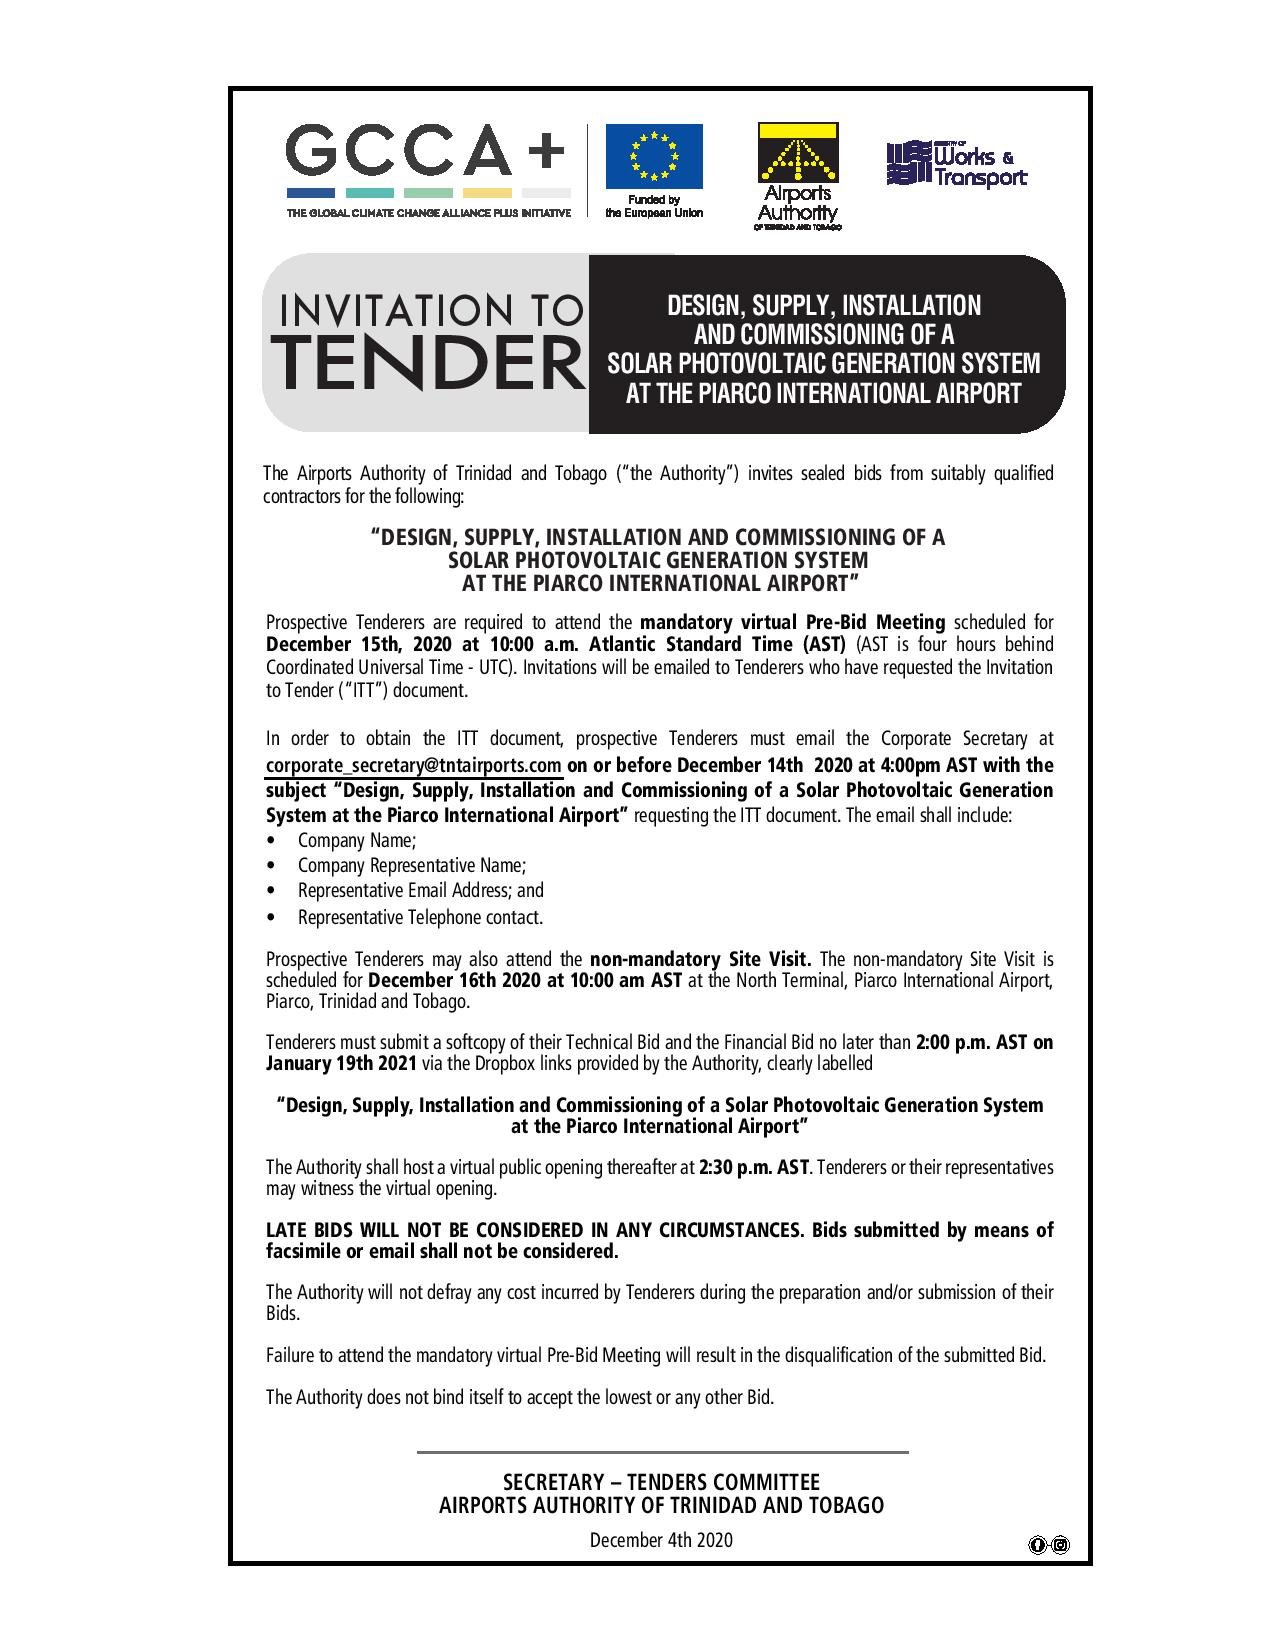 Invitation to tender for the design, supply, installation and commissioning of a solar photovoltaic generation system at the Piarco International Airport. Deadline 15th December 2020. Pleaase attend the mandatory site visit on December 10th, 2020 at 10:00am, and submit no later than 2:00pm AST on January 19th, 2020